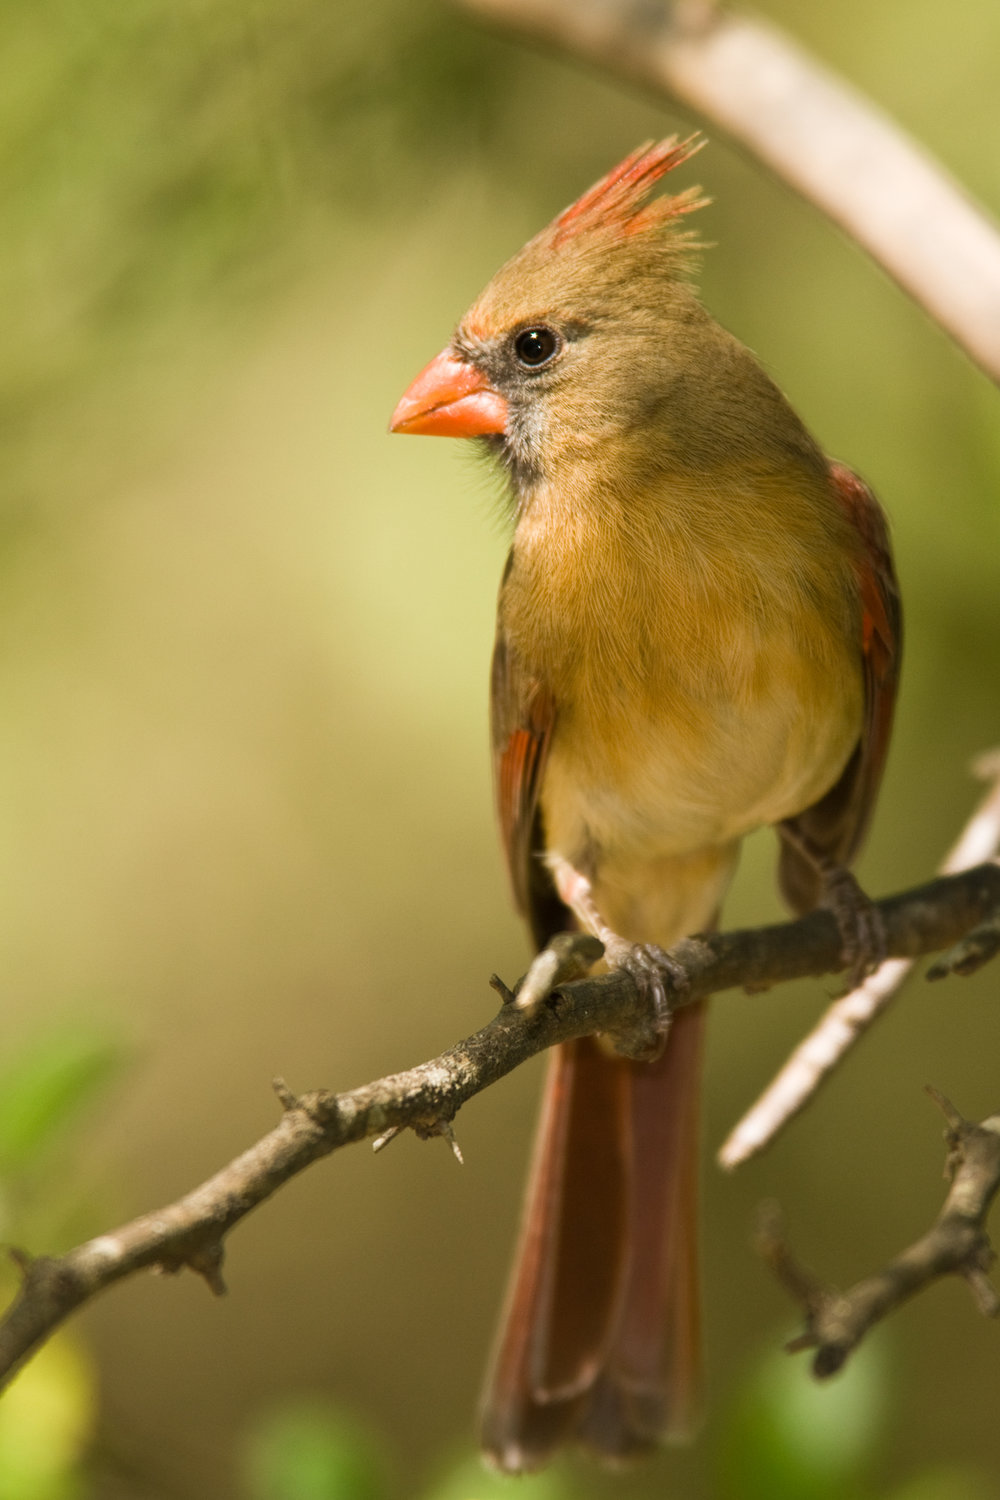 Northern Cardinal, female..雌性主红雀